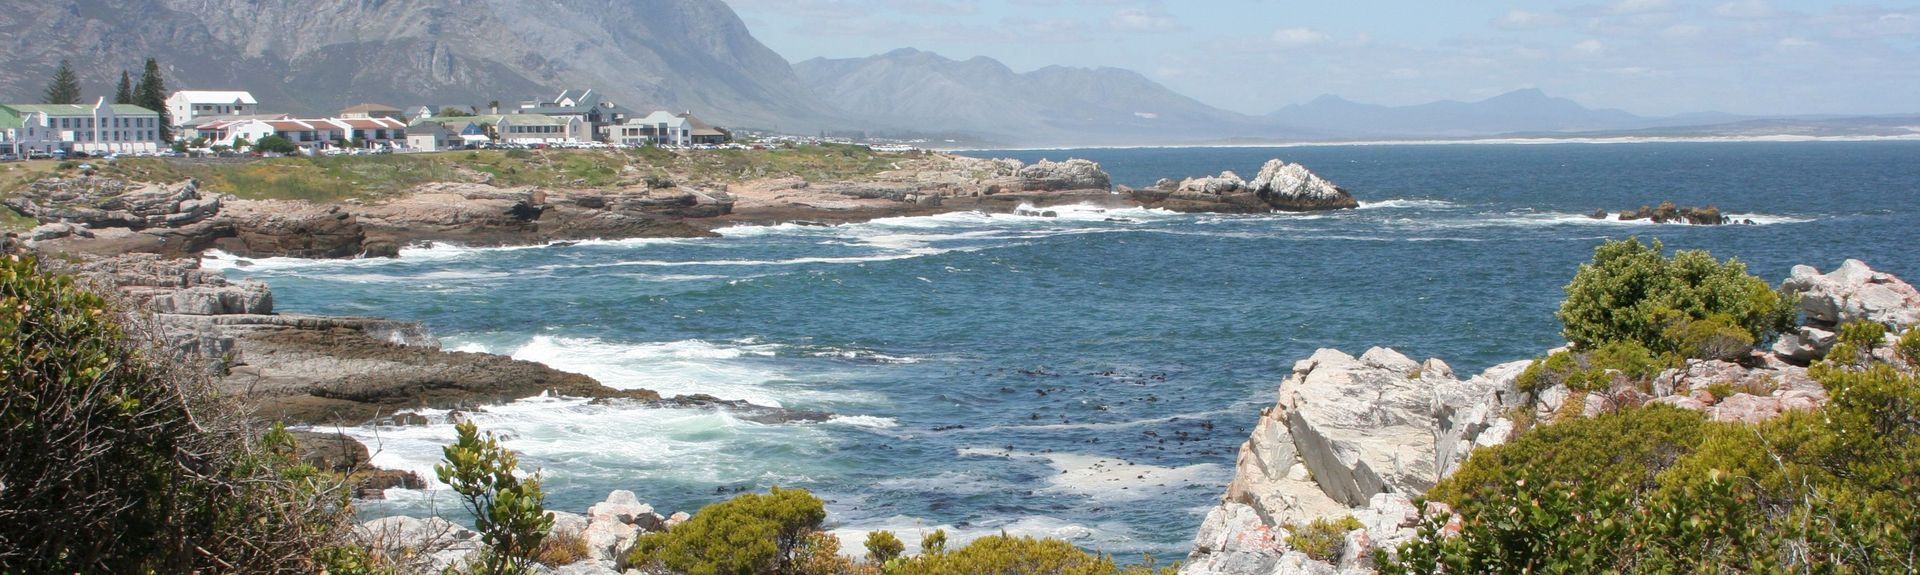 Kleinmond, Western Cape (province), South Africa